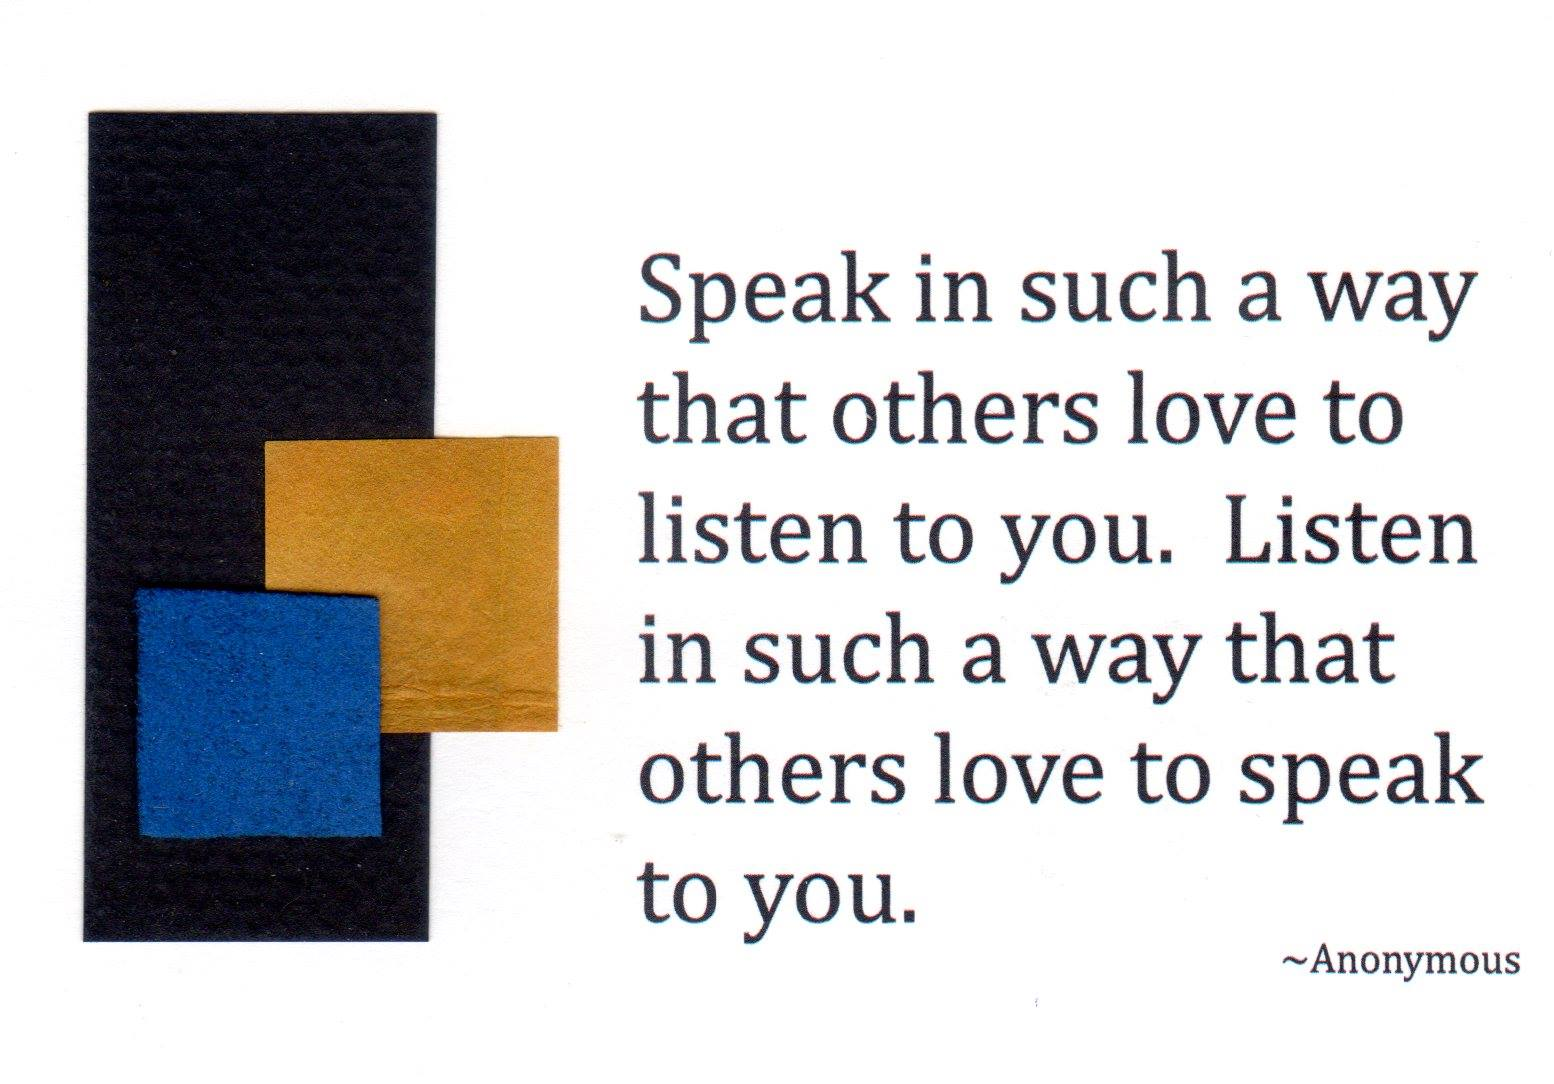 Listening and speaking with love